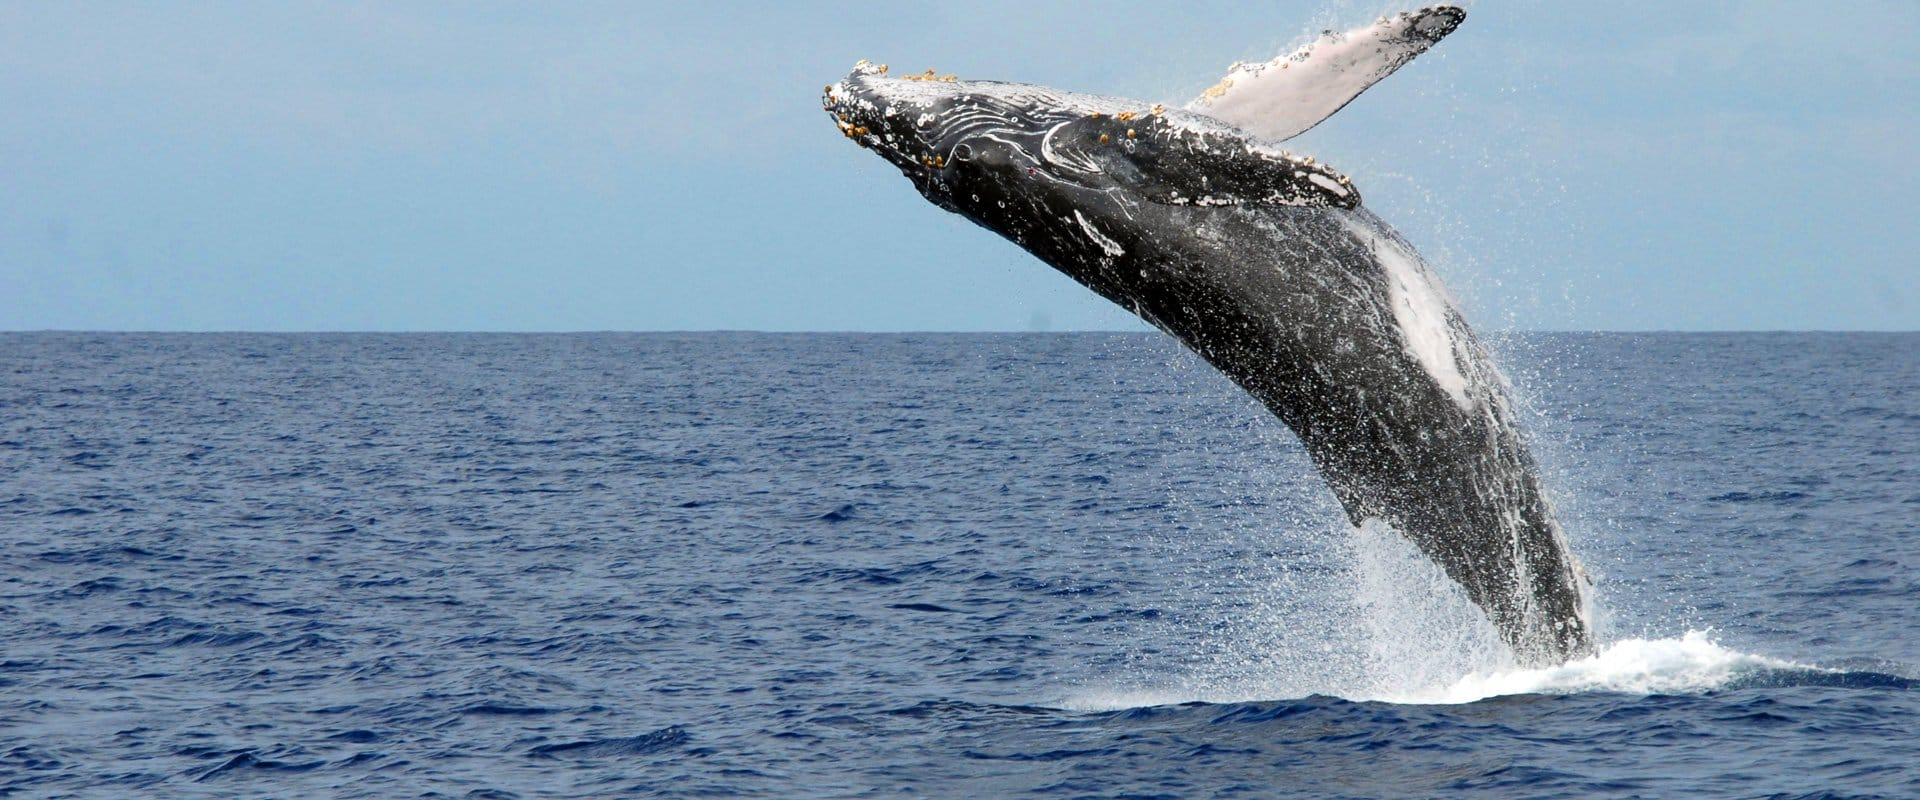 Humpback whales return to Hawaiian waters